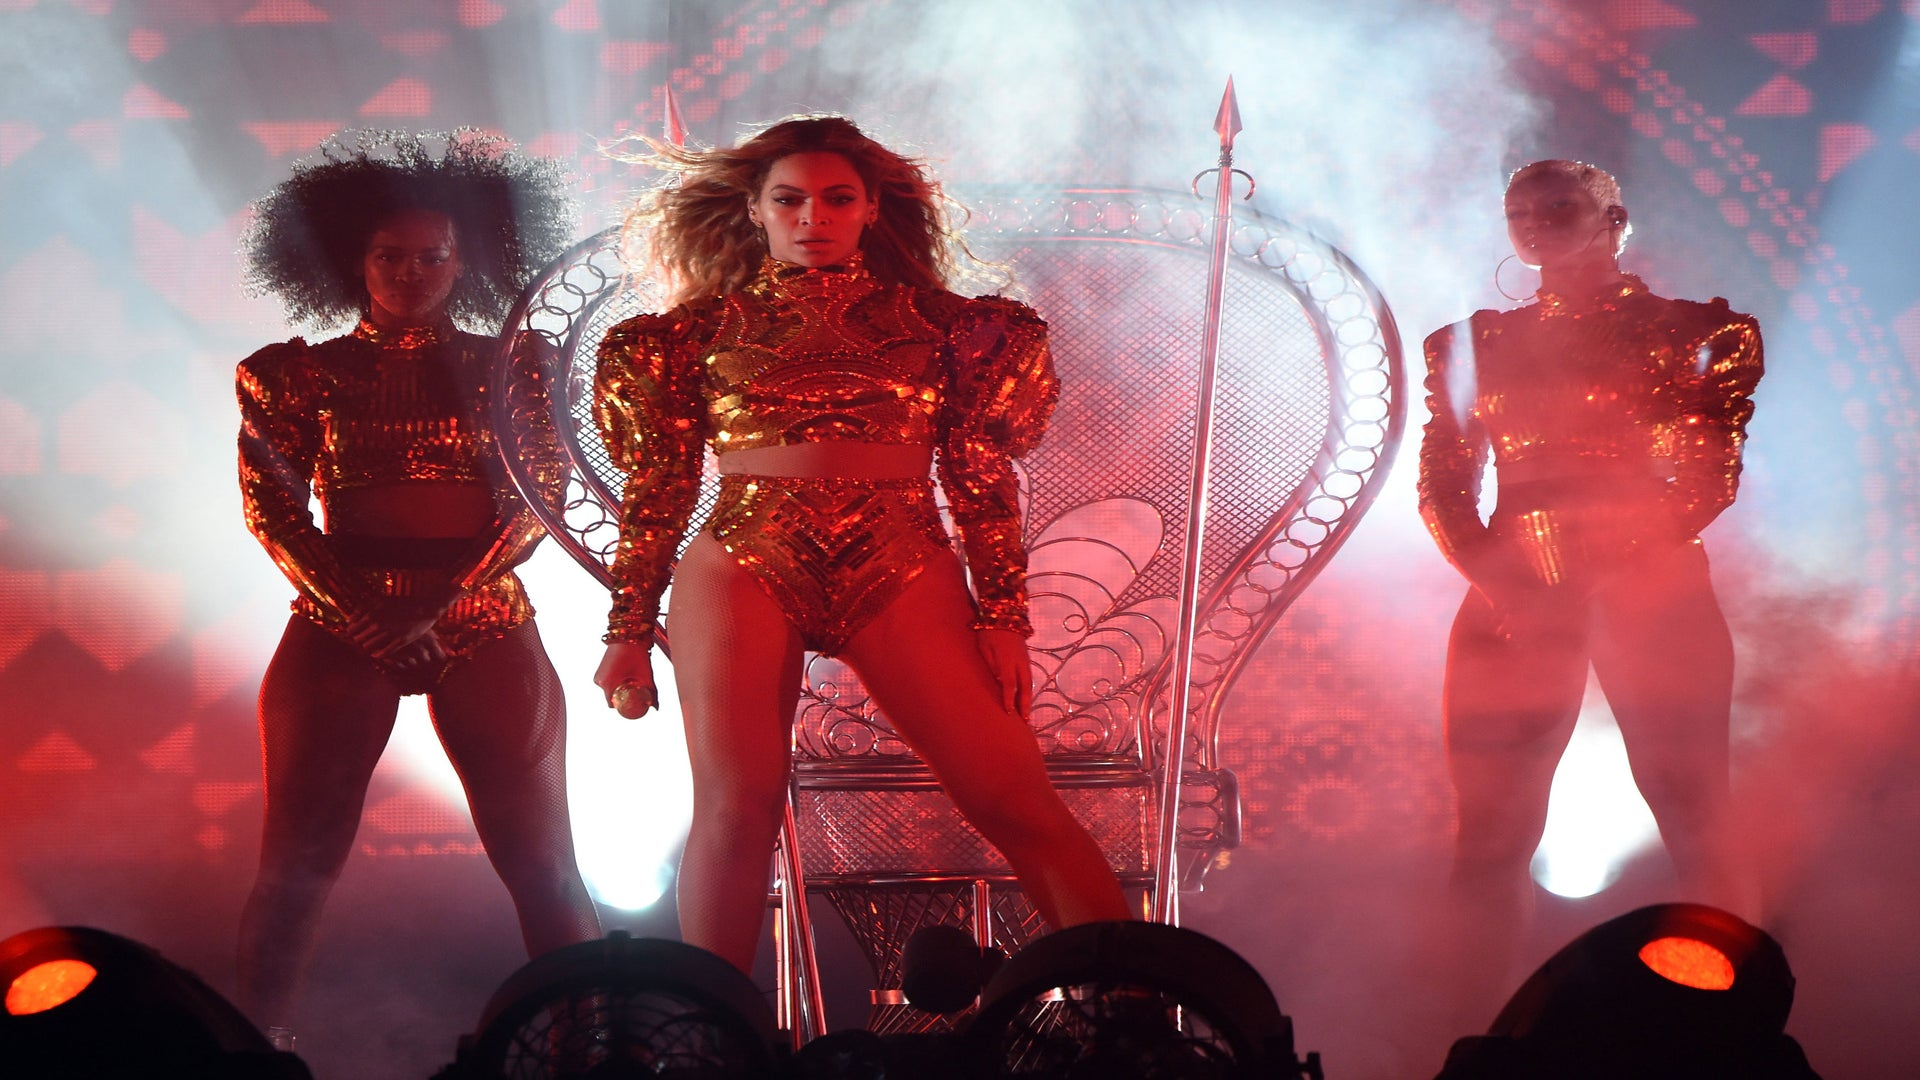 Here's Your Chance To Win Free Tickets To Beyoncé's Formation Tour!